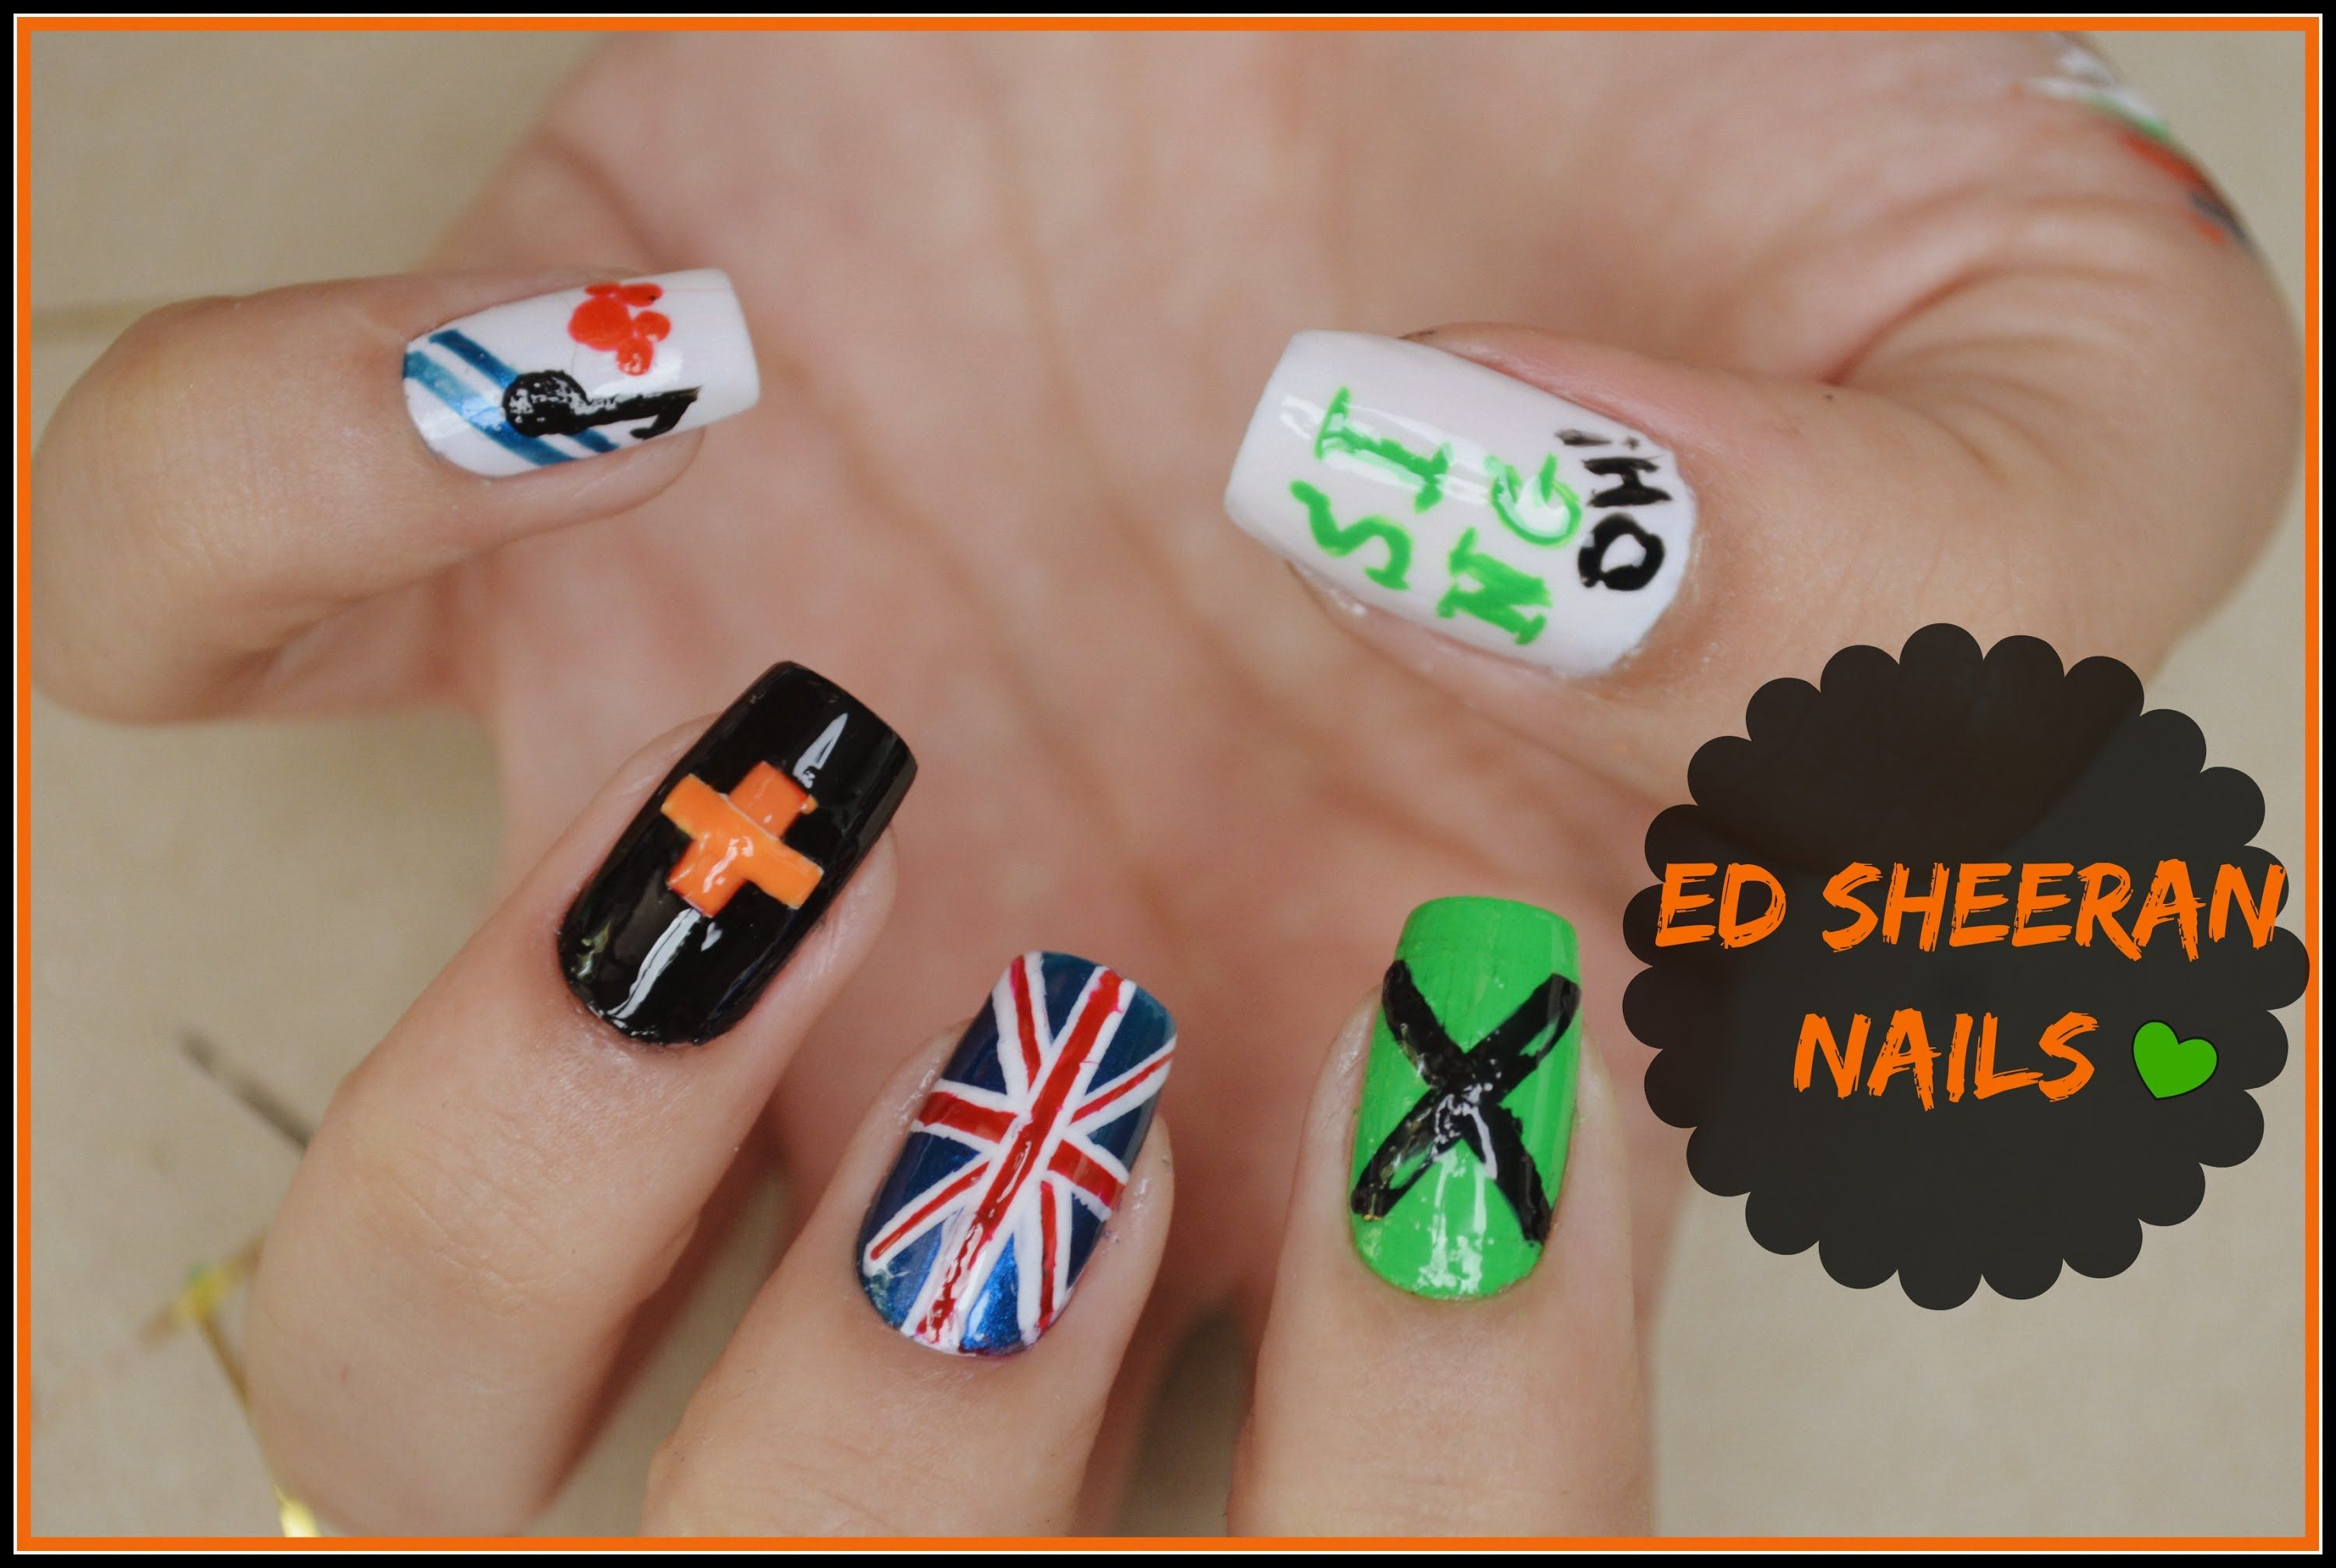 ed sheeran nails - Google Search | Nail art | Pinterest | Hair ...